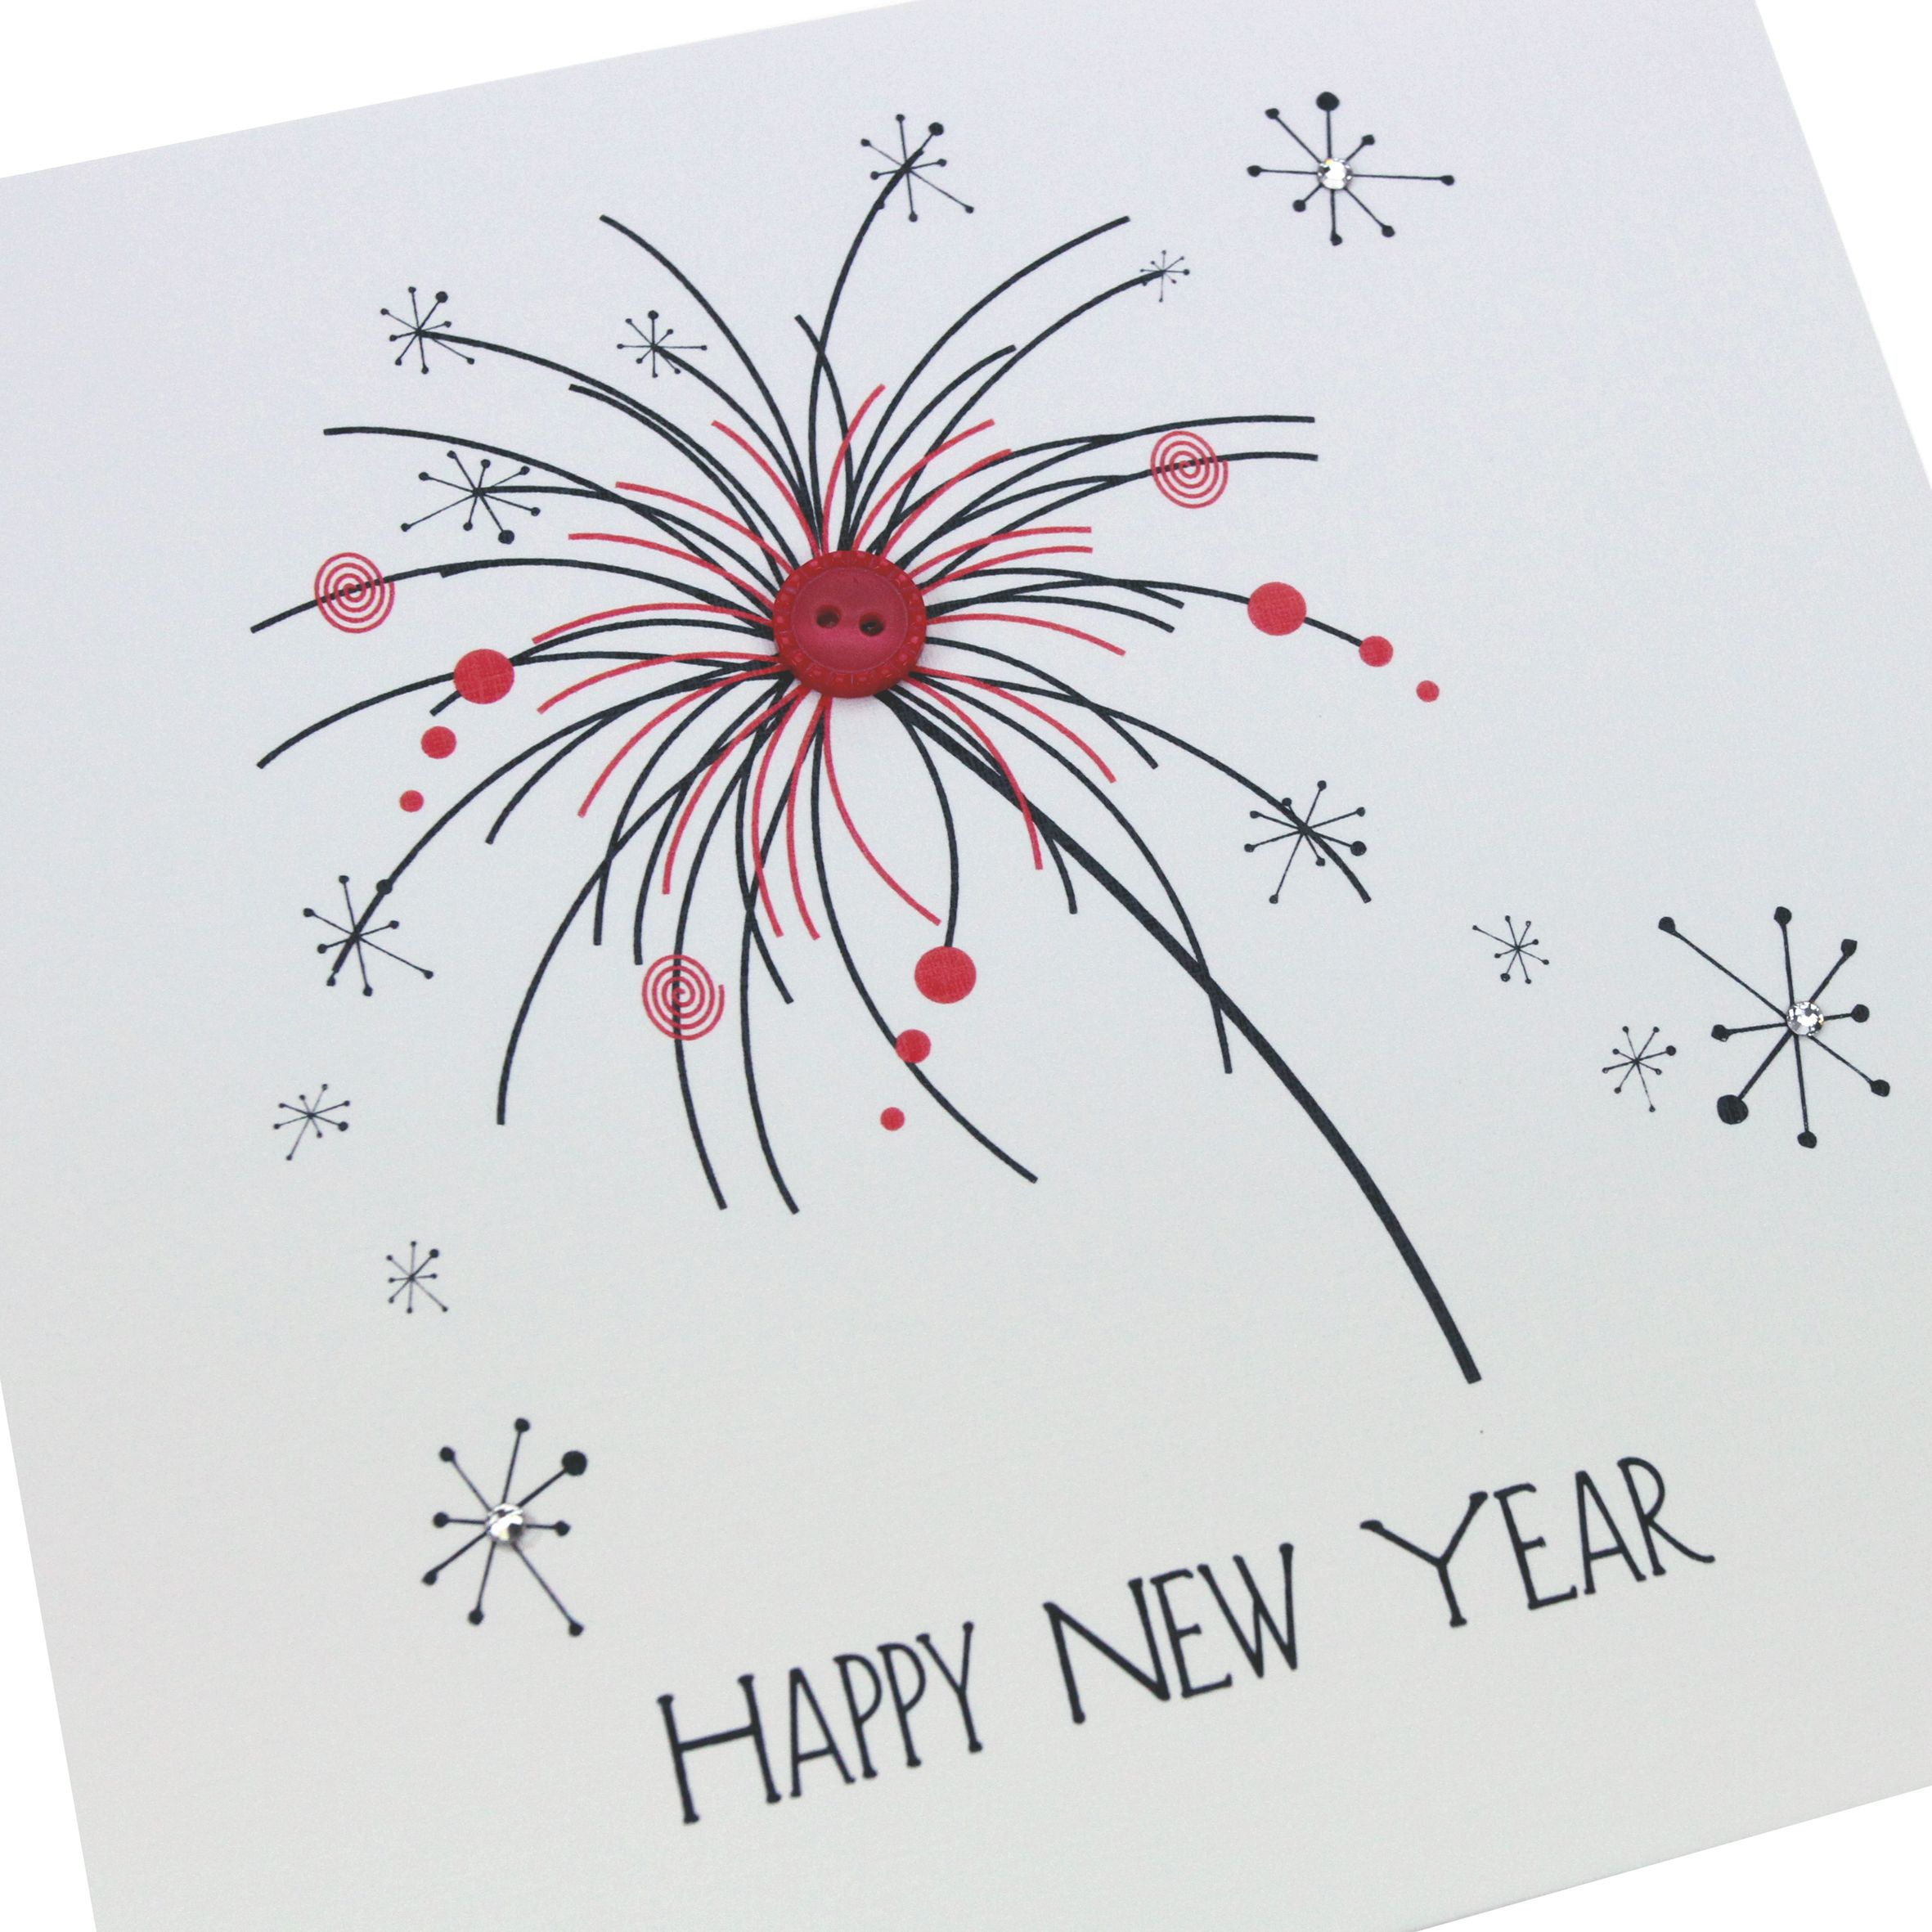 New Year Card Handmade Design | Merry Christmas and Happy New Year ...